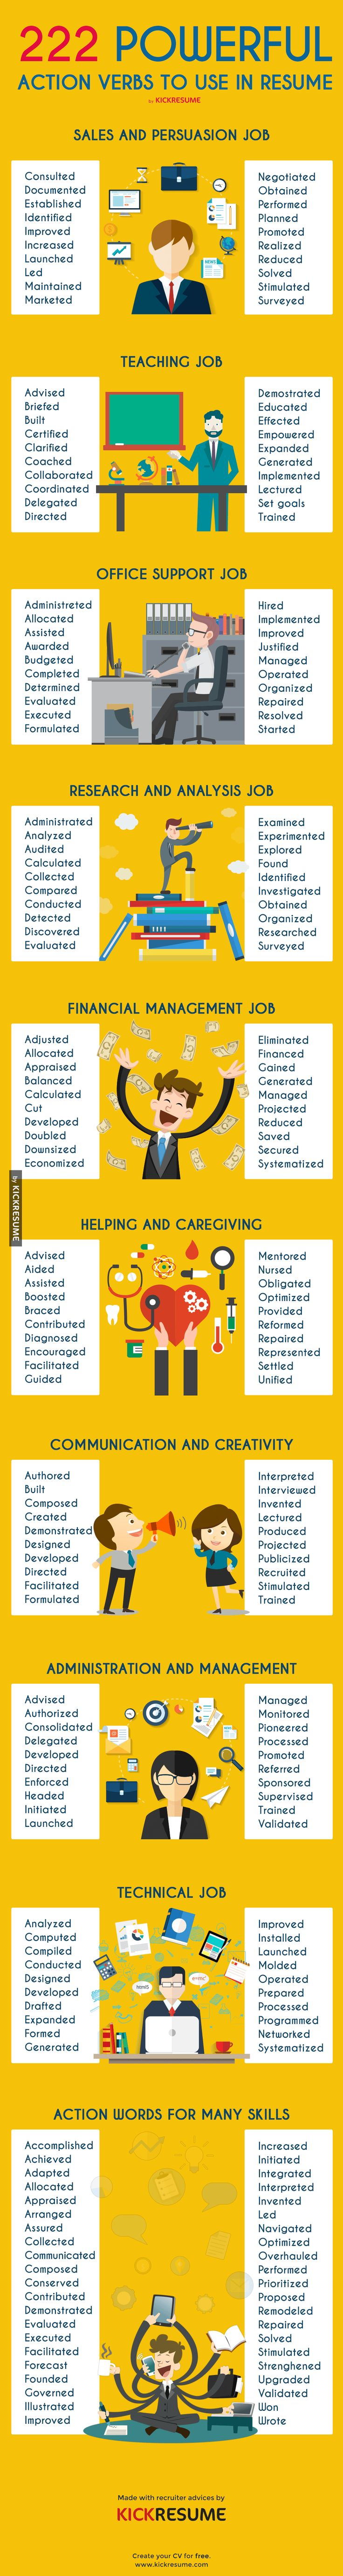 verbs for resumes action verbs resume the best resume action